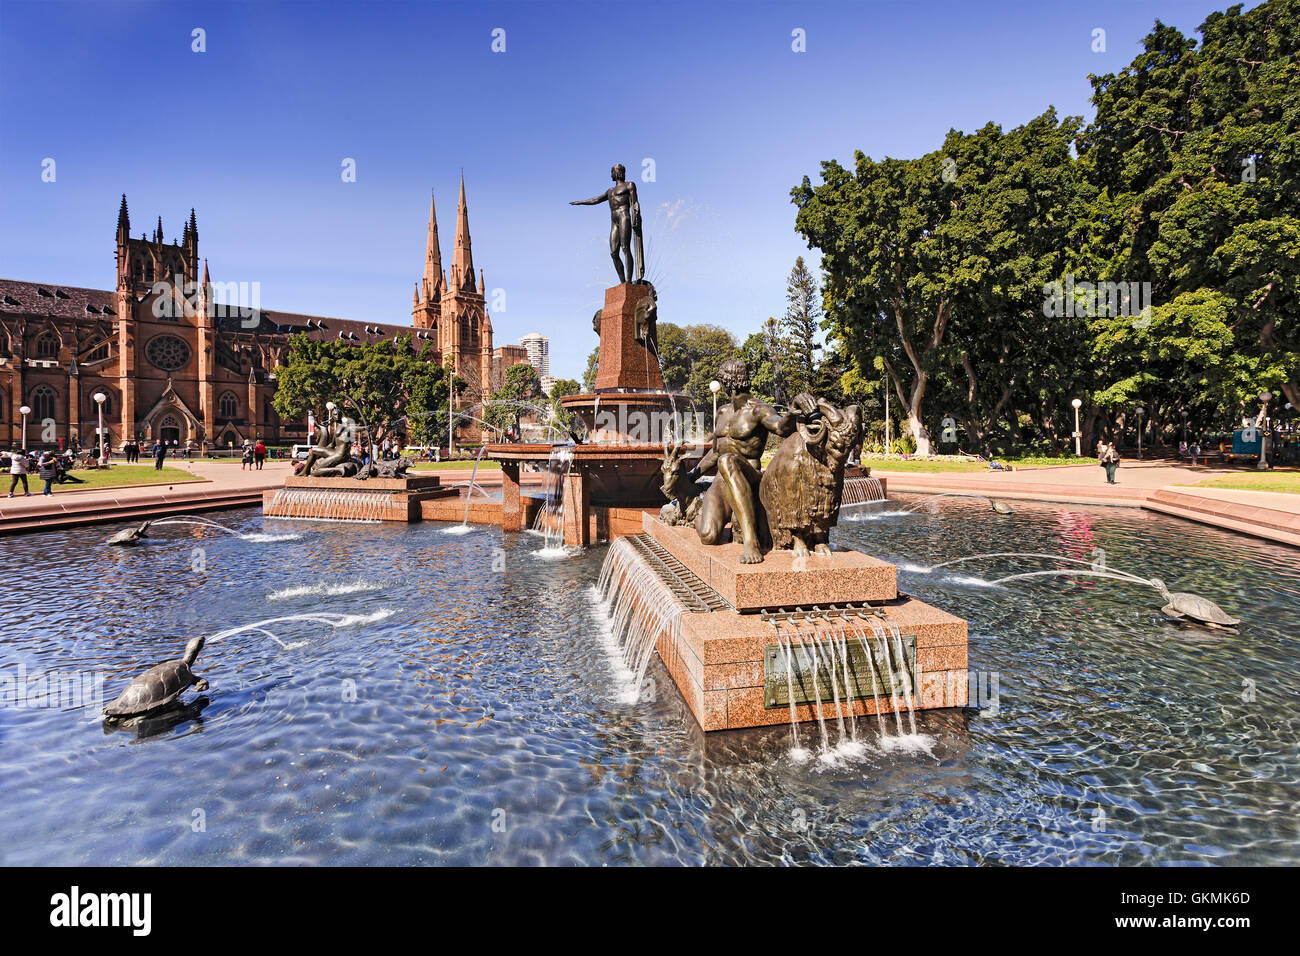 Water fountains hyde park - Bright Sunny Day In Sydney S Hyde Park Fresh Water Fountain Pool Surrounded By Tall Green Trees And St Mary S Cathedral